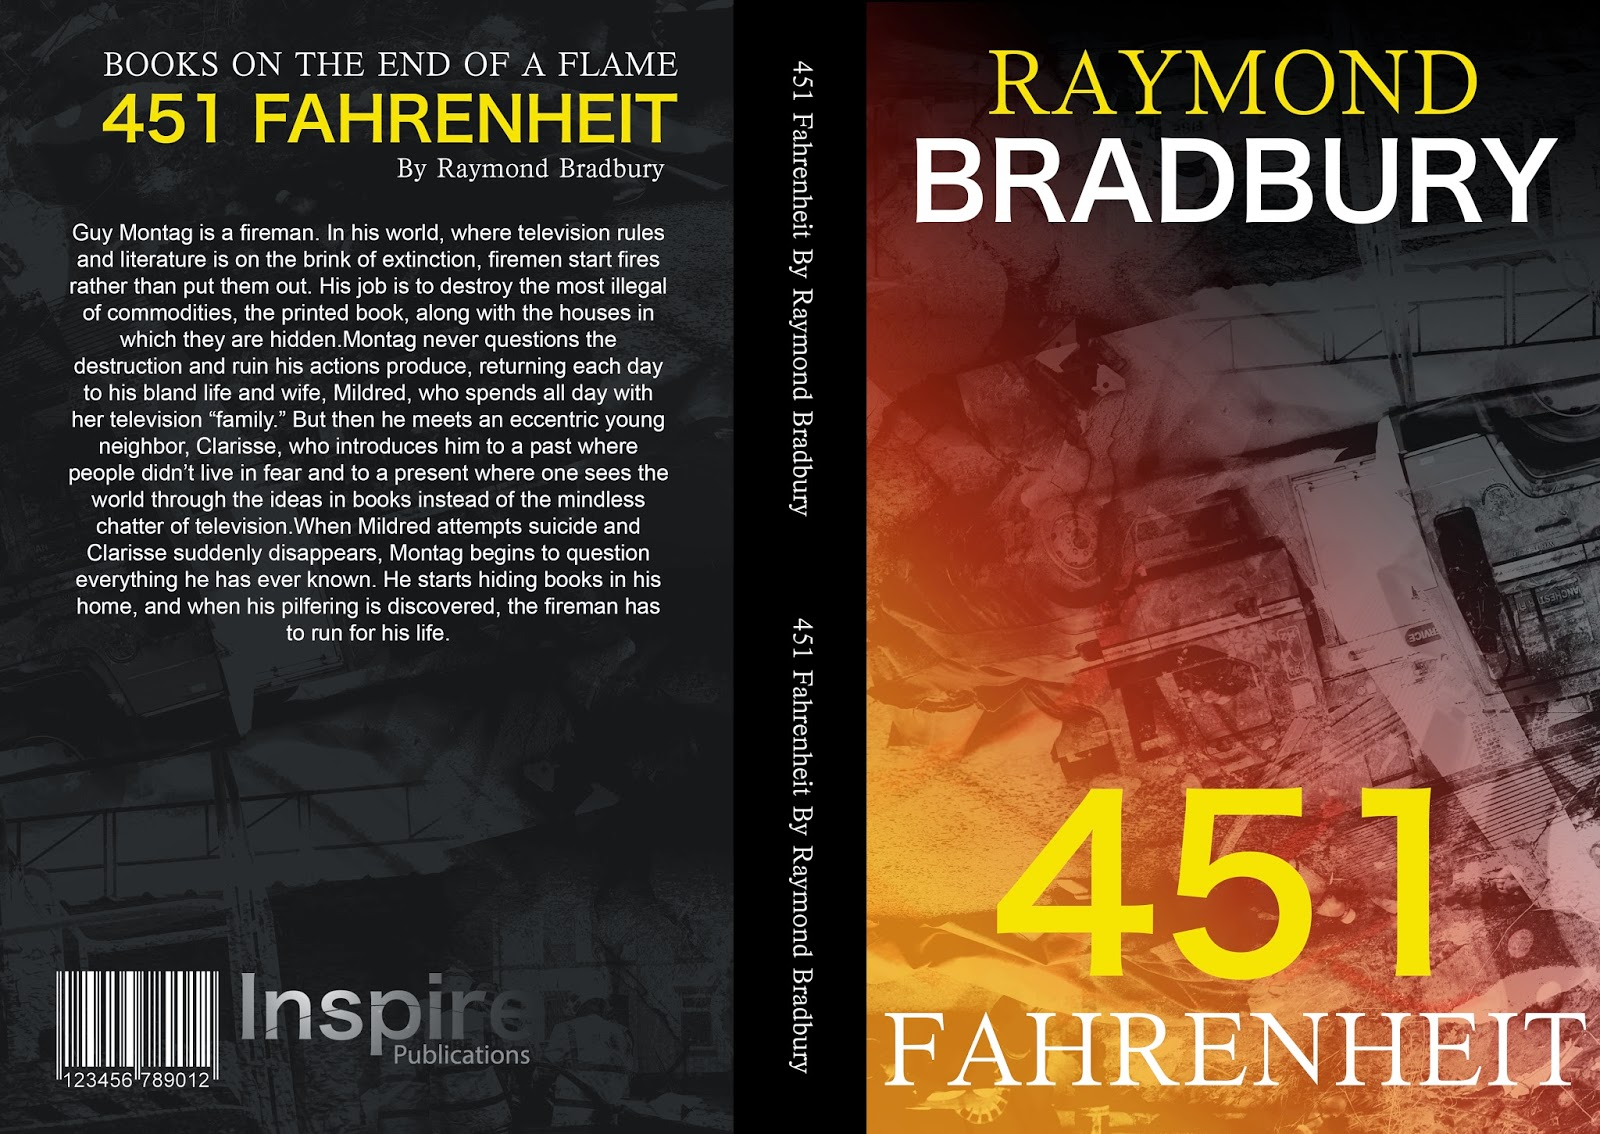 Book Covers Front And Back : University portfolio fmp fahrenheit book cover